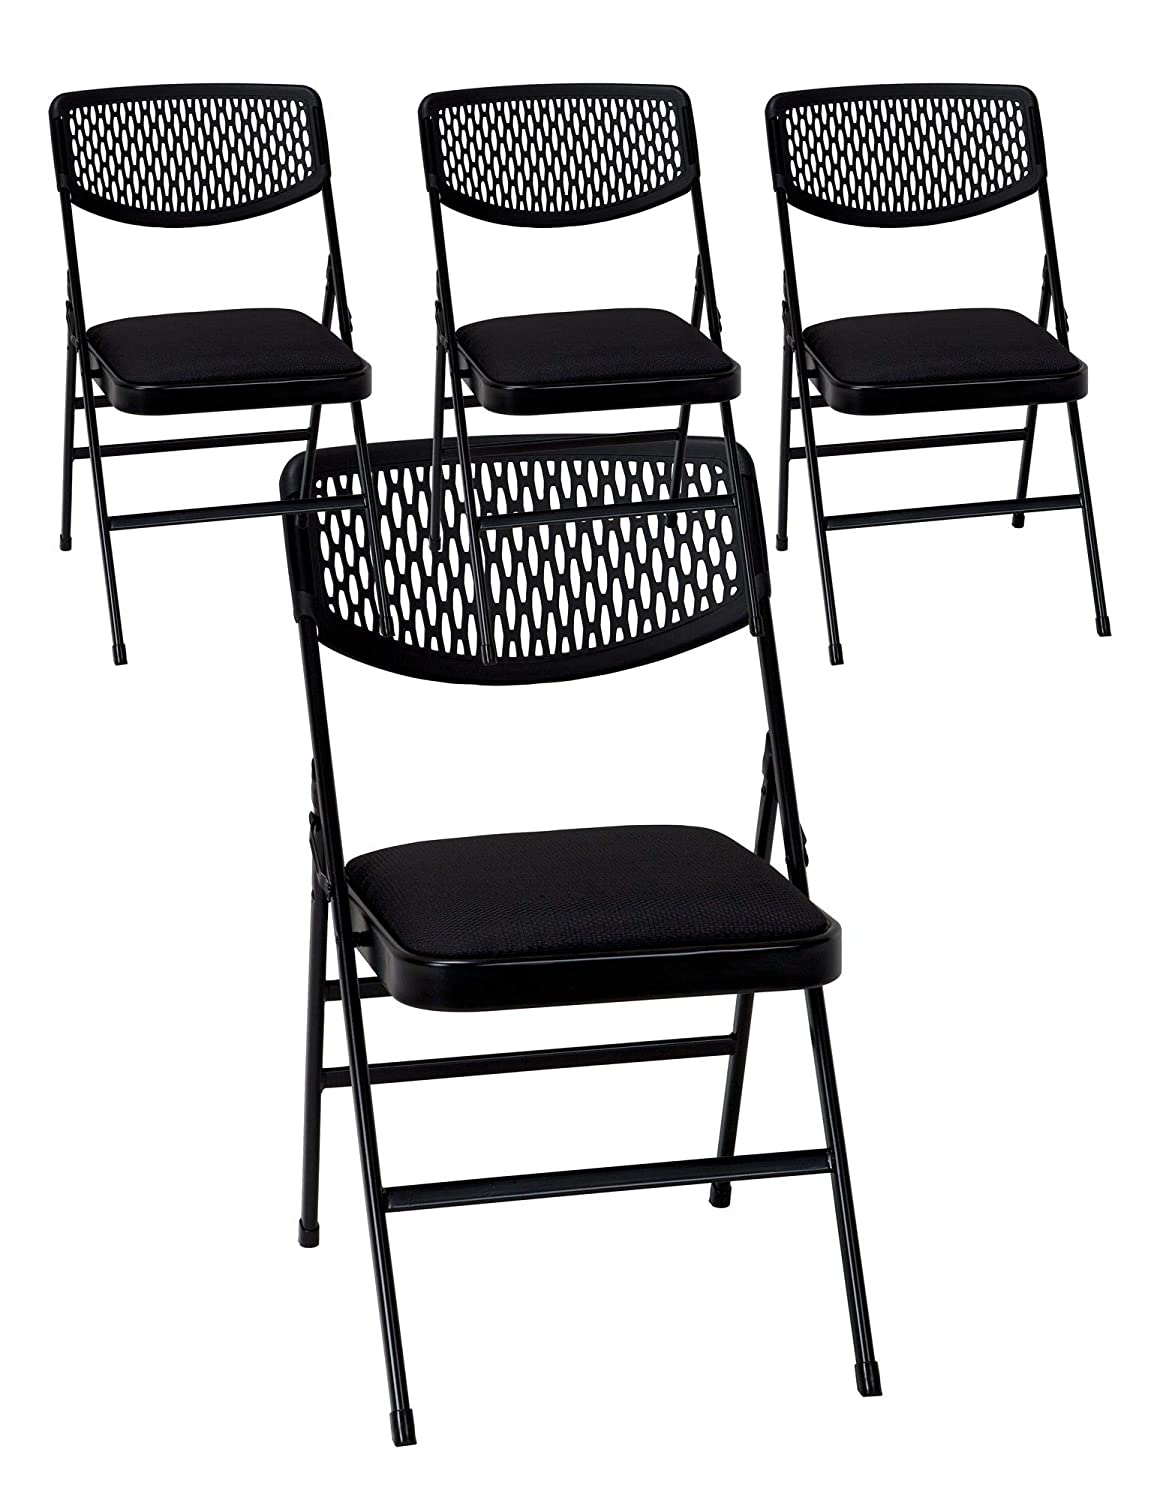 Cosco Commercial Fabric Padded Seat Folding Chair with Resin Mesh Back, Black, 4-Pack